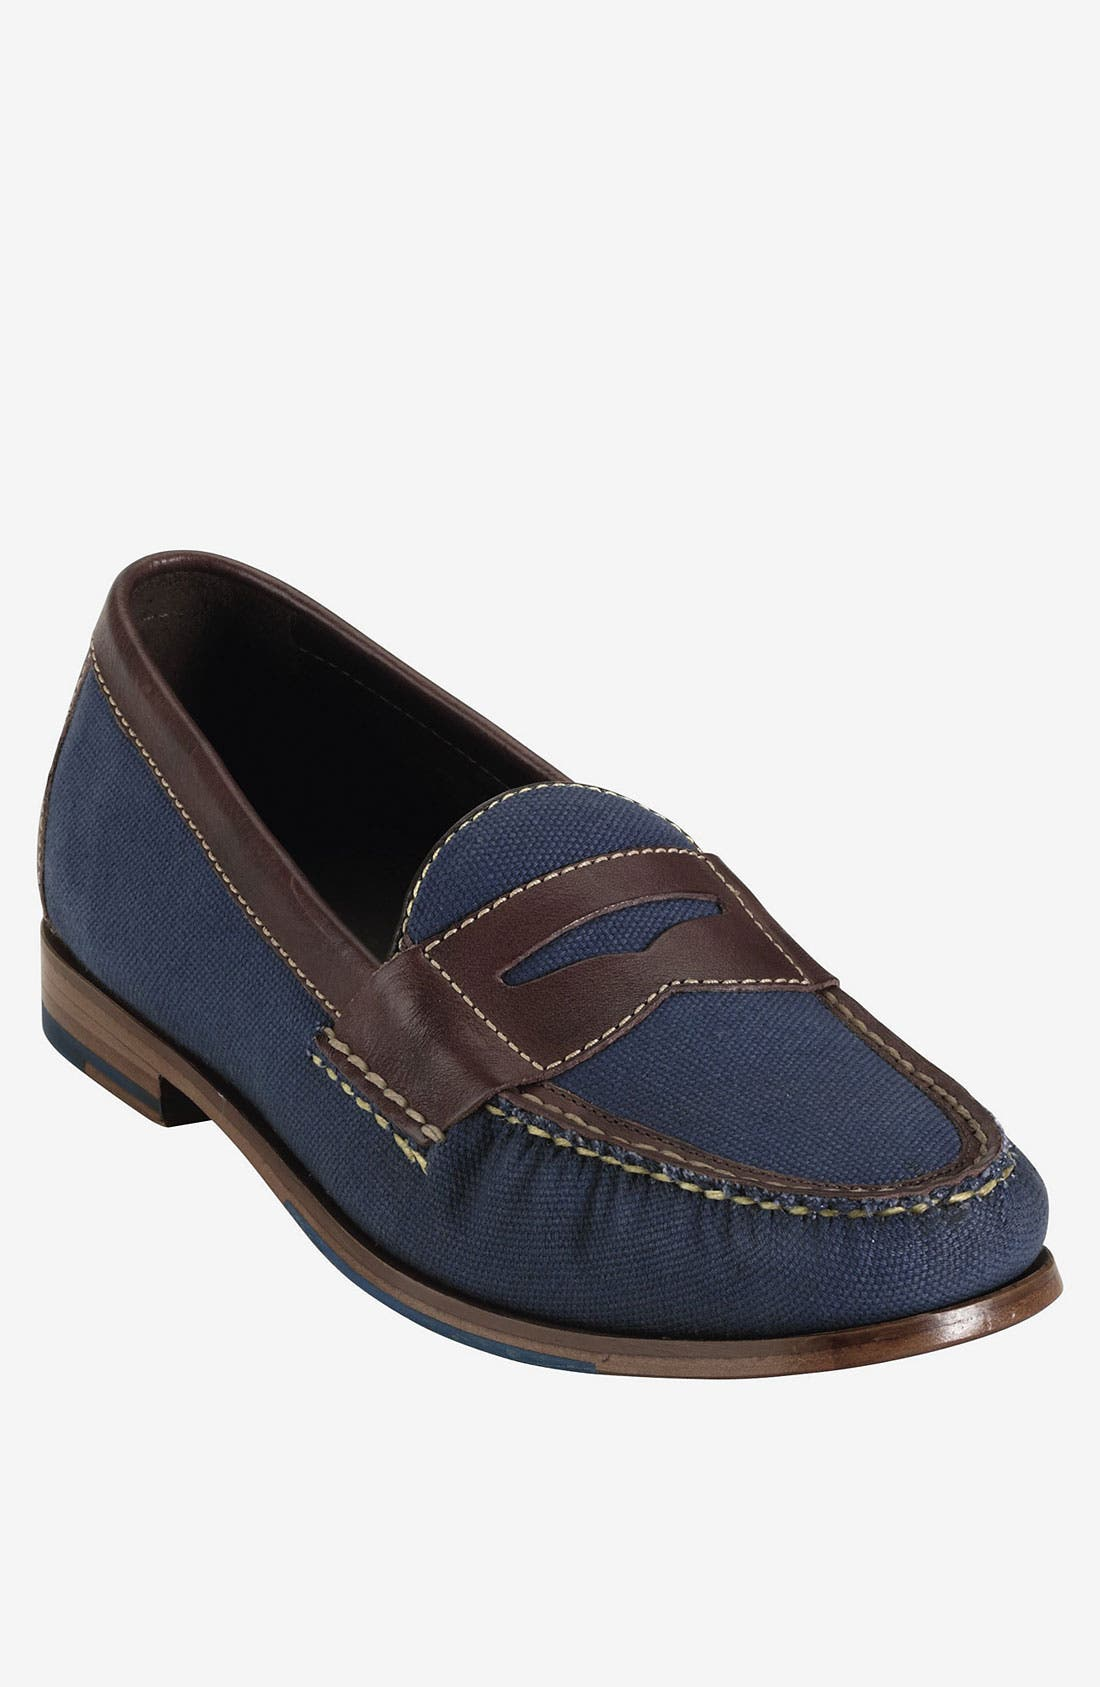 Alternate Image 1 Selected - Cole Haan 'Pinch Air' Penny Loafer (Online Only)